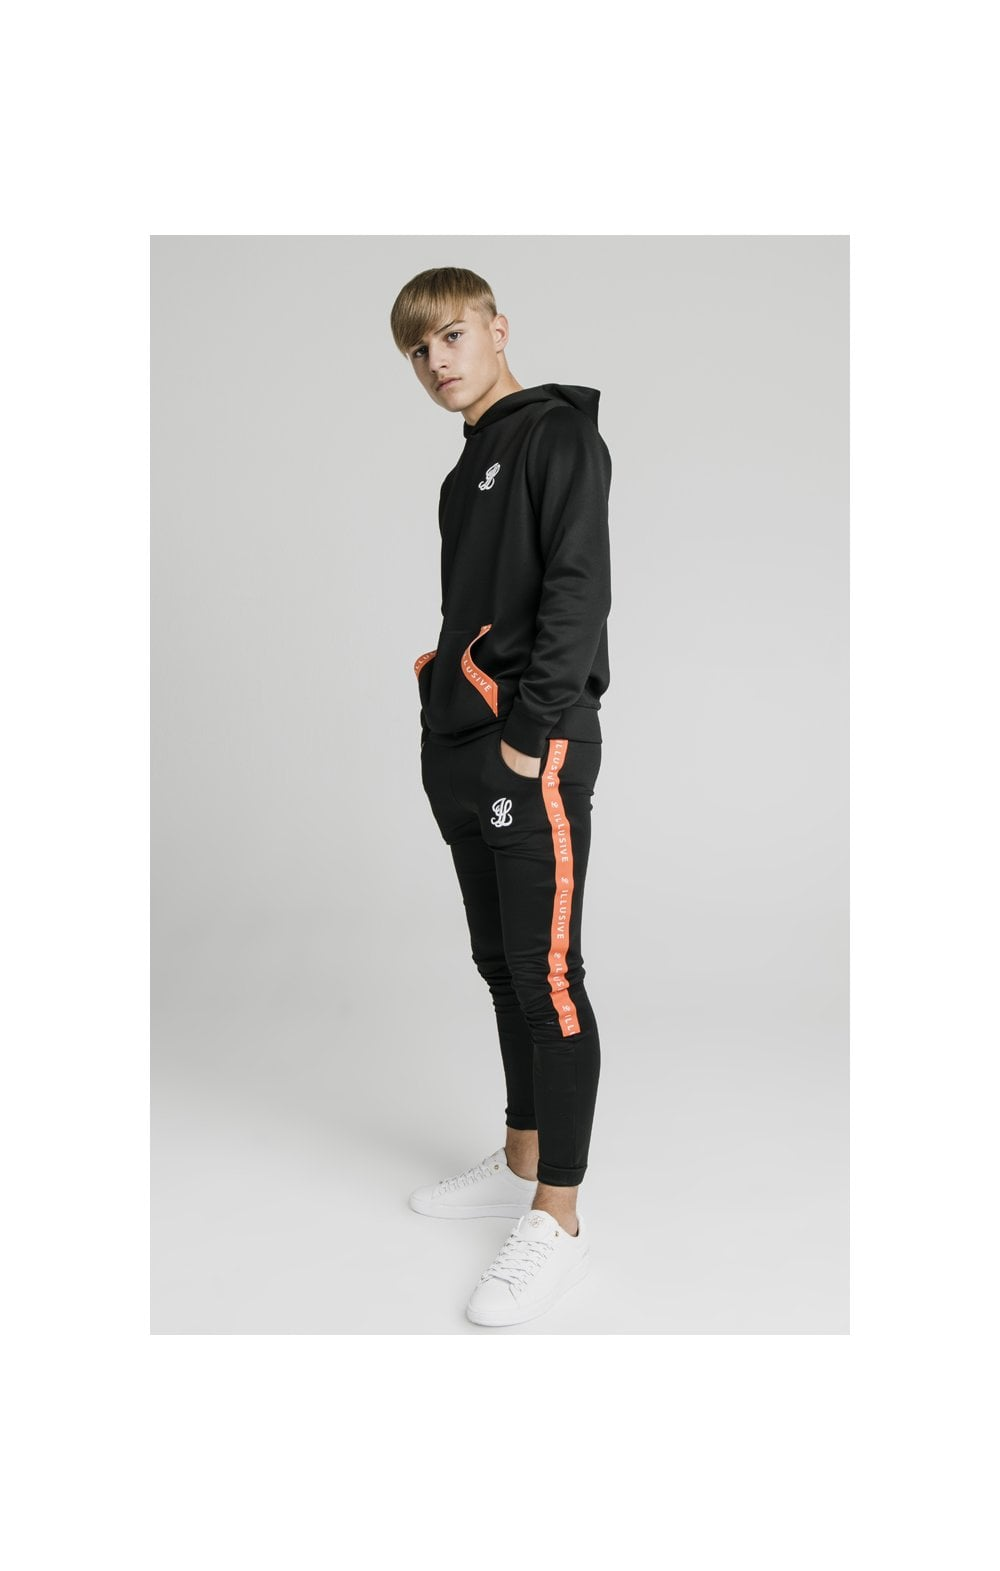 Illusive London Tape Joggers - Black (2)